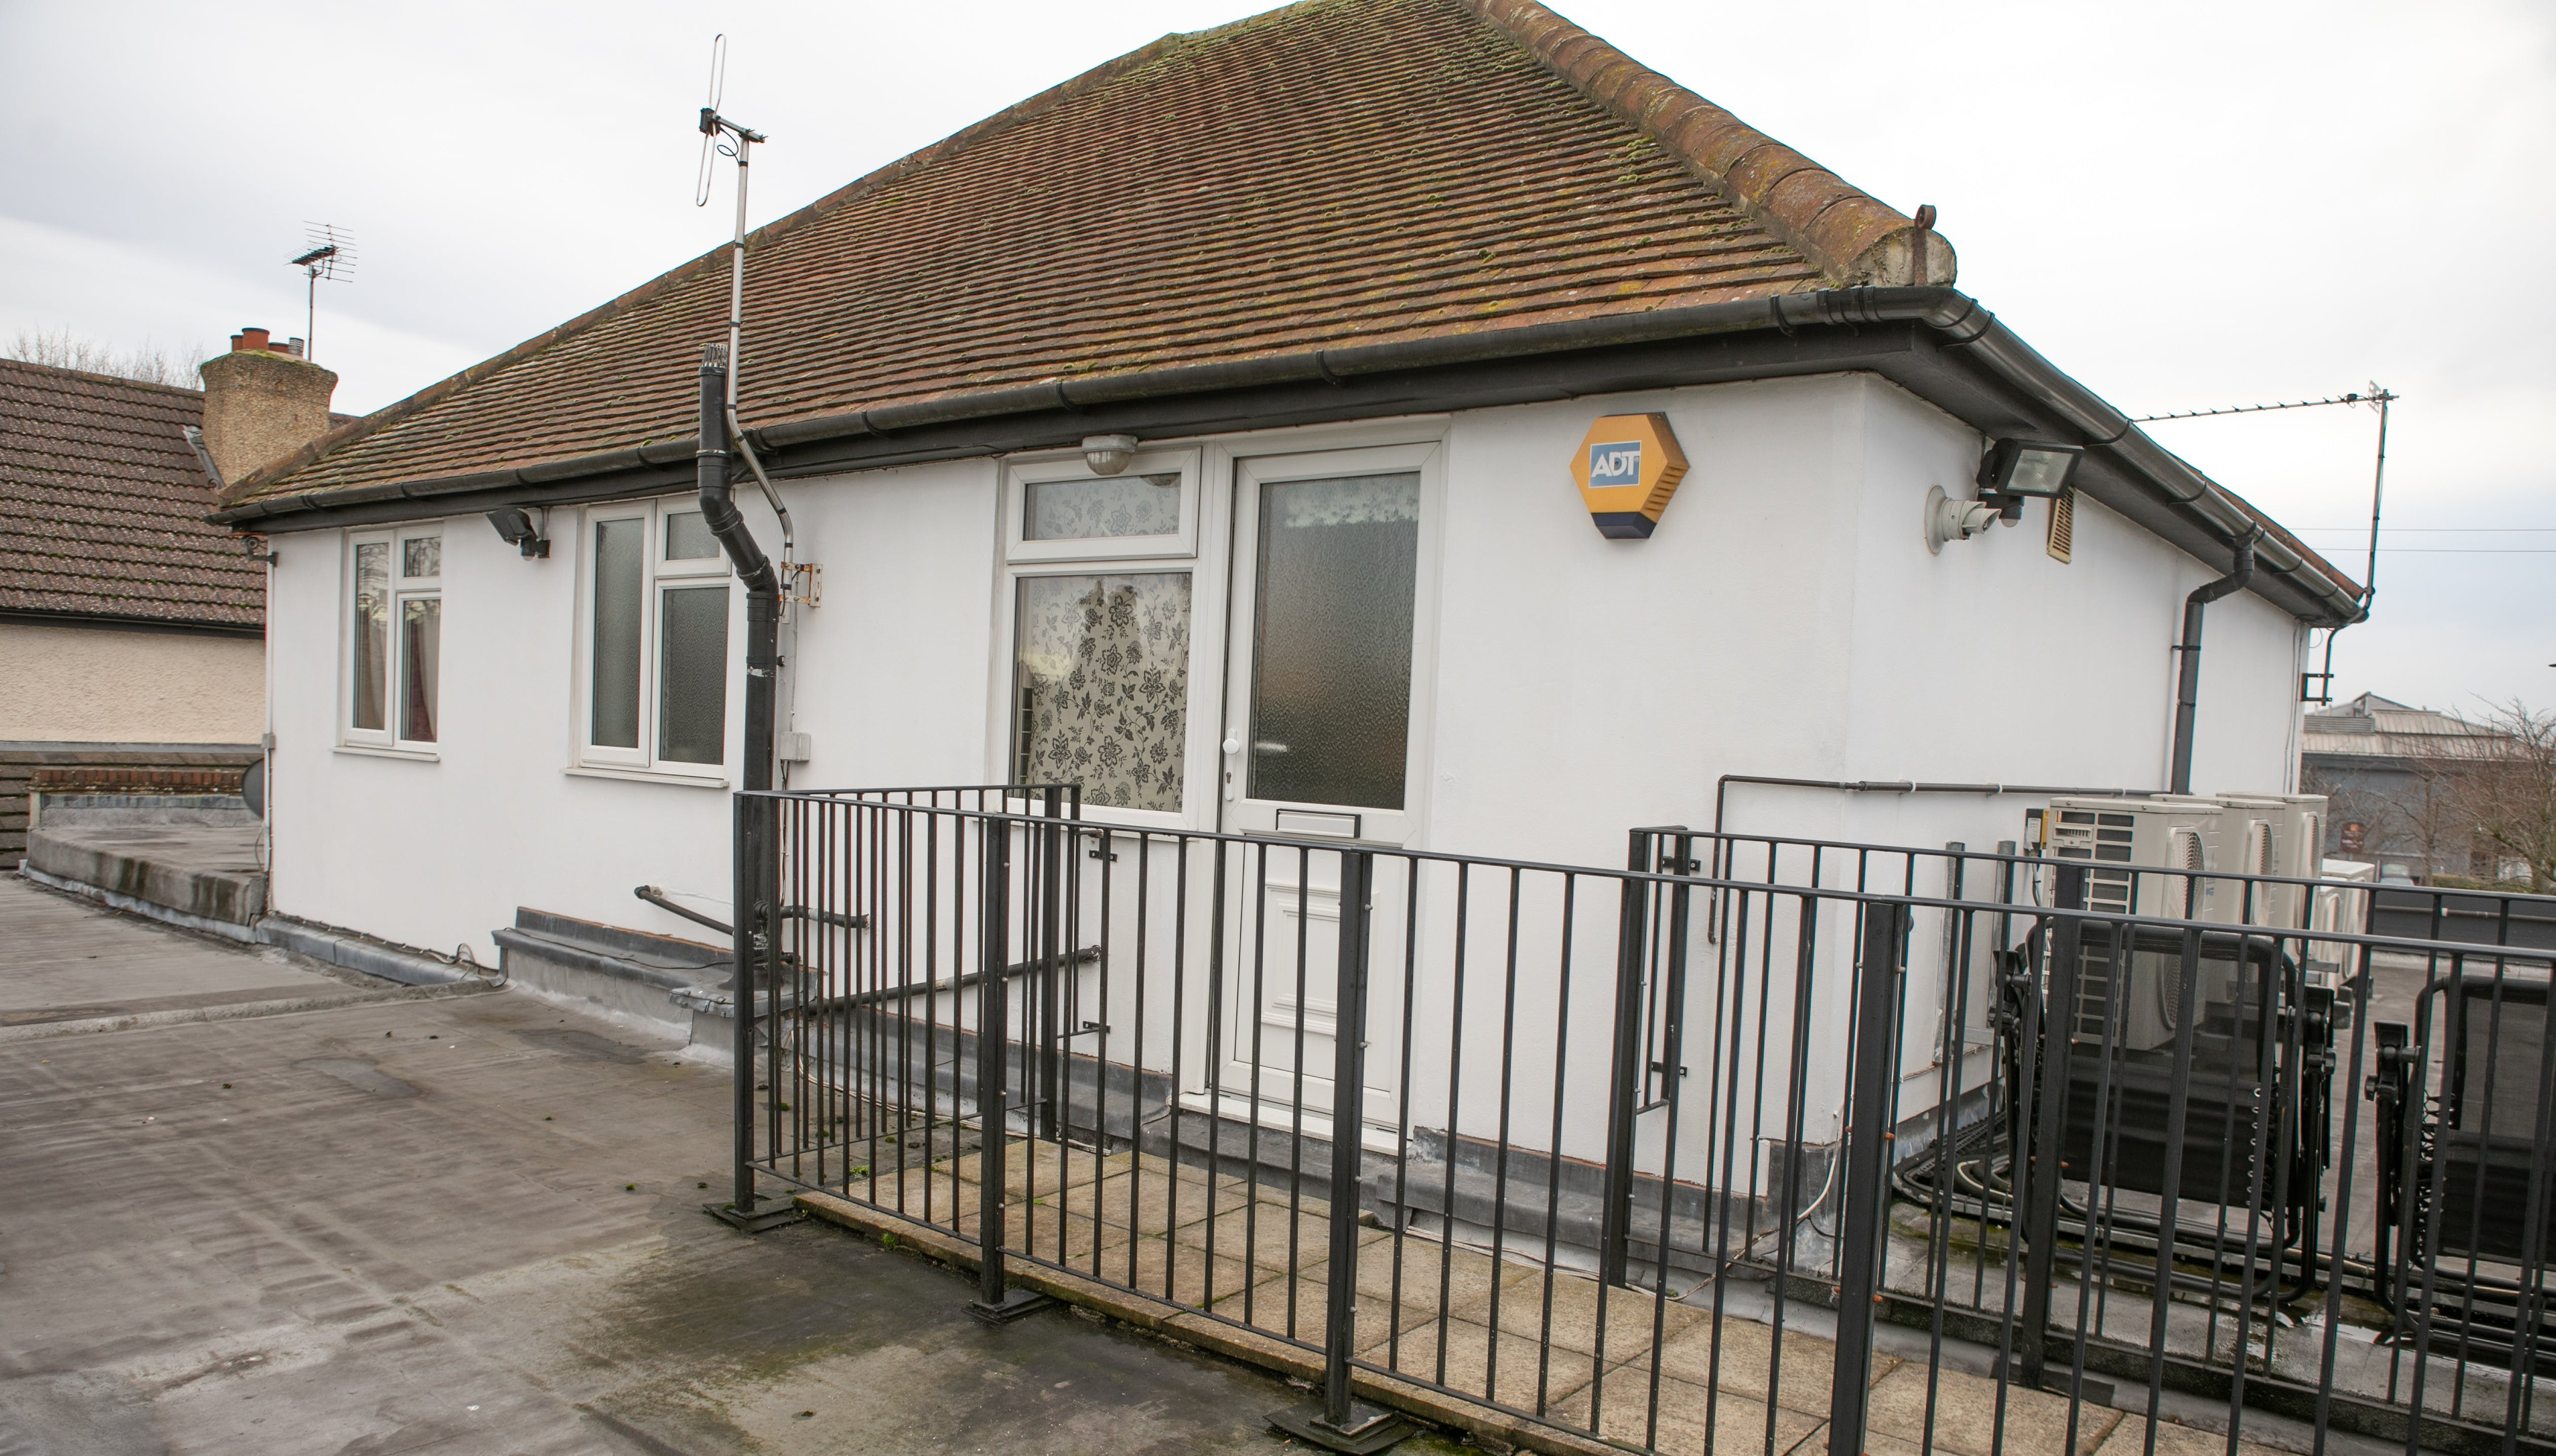 652 Bath Road, Maidenhead, Retail / Other / Investment To Let / For Sale - Bath Road_Dec2014 copy.jpg